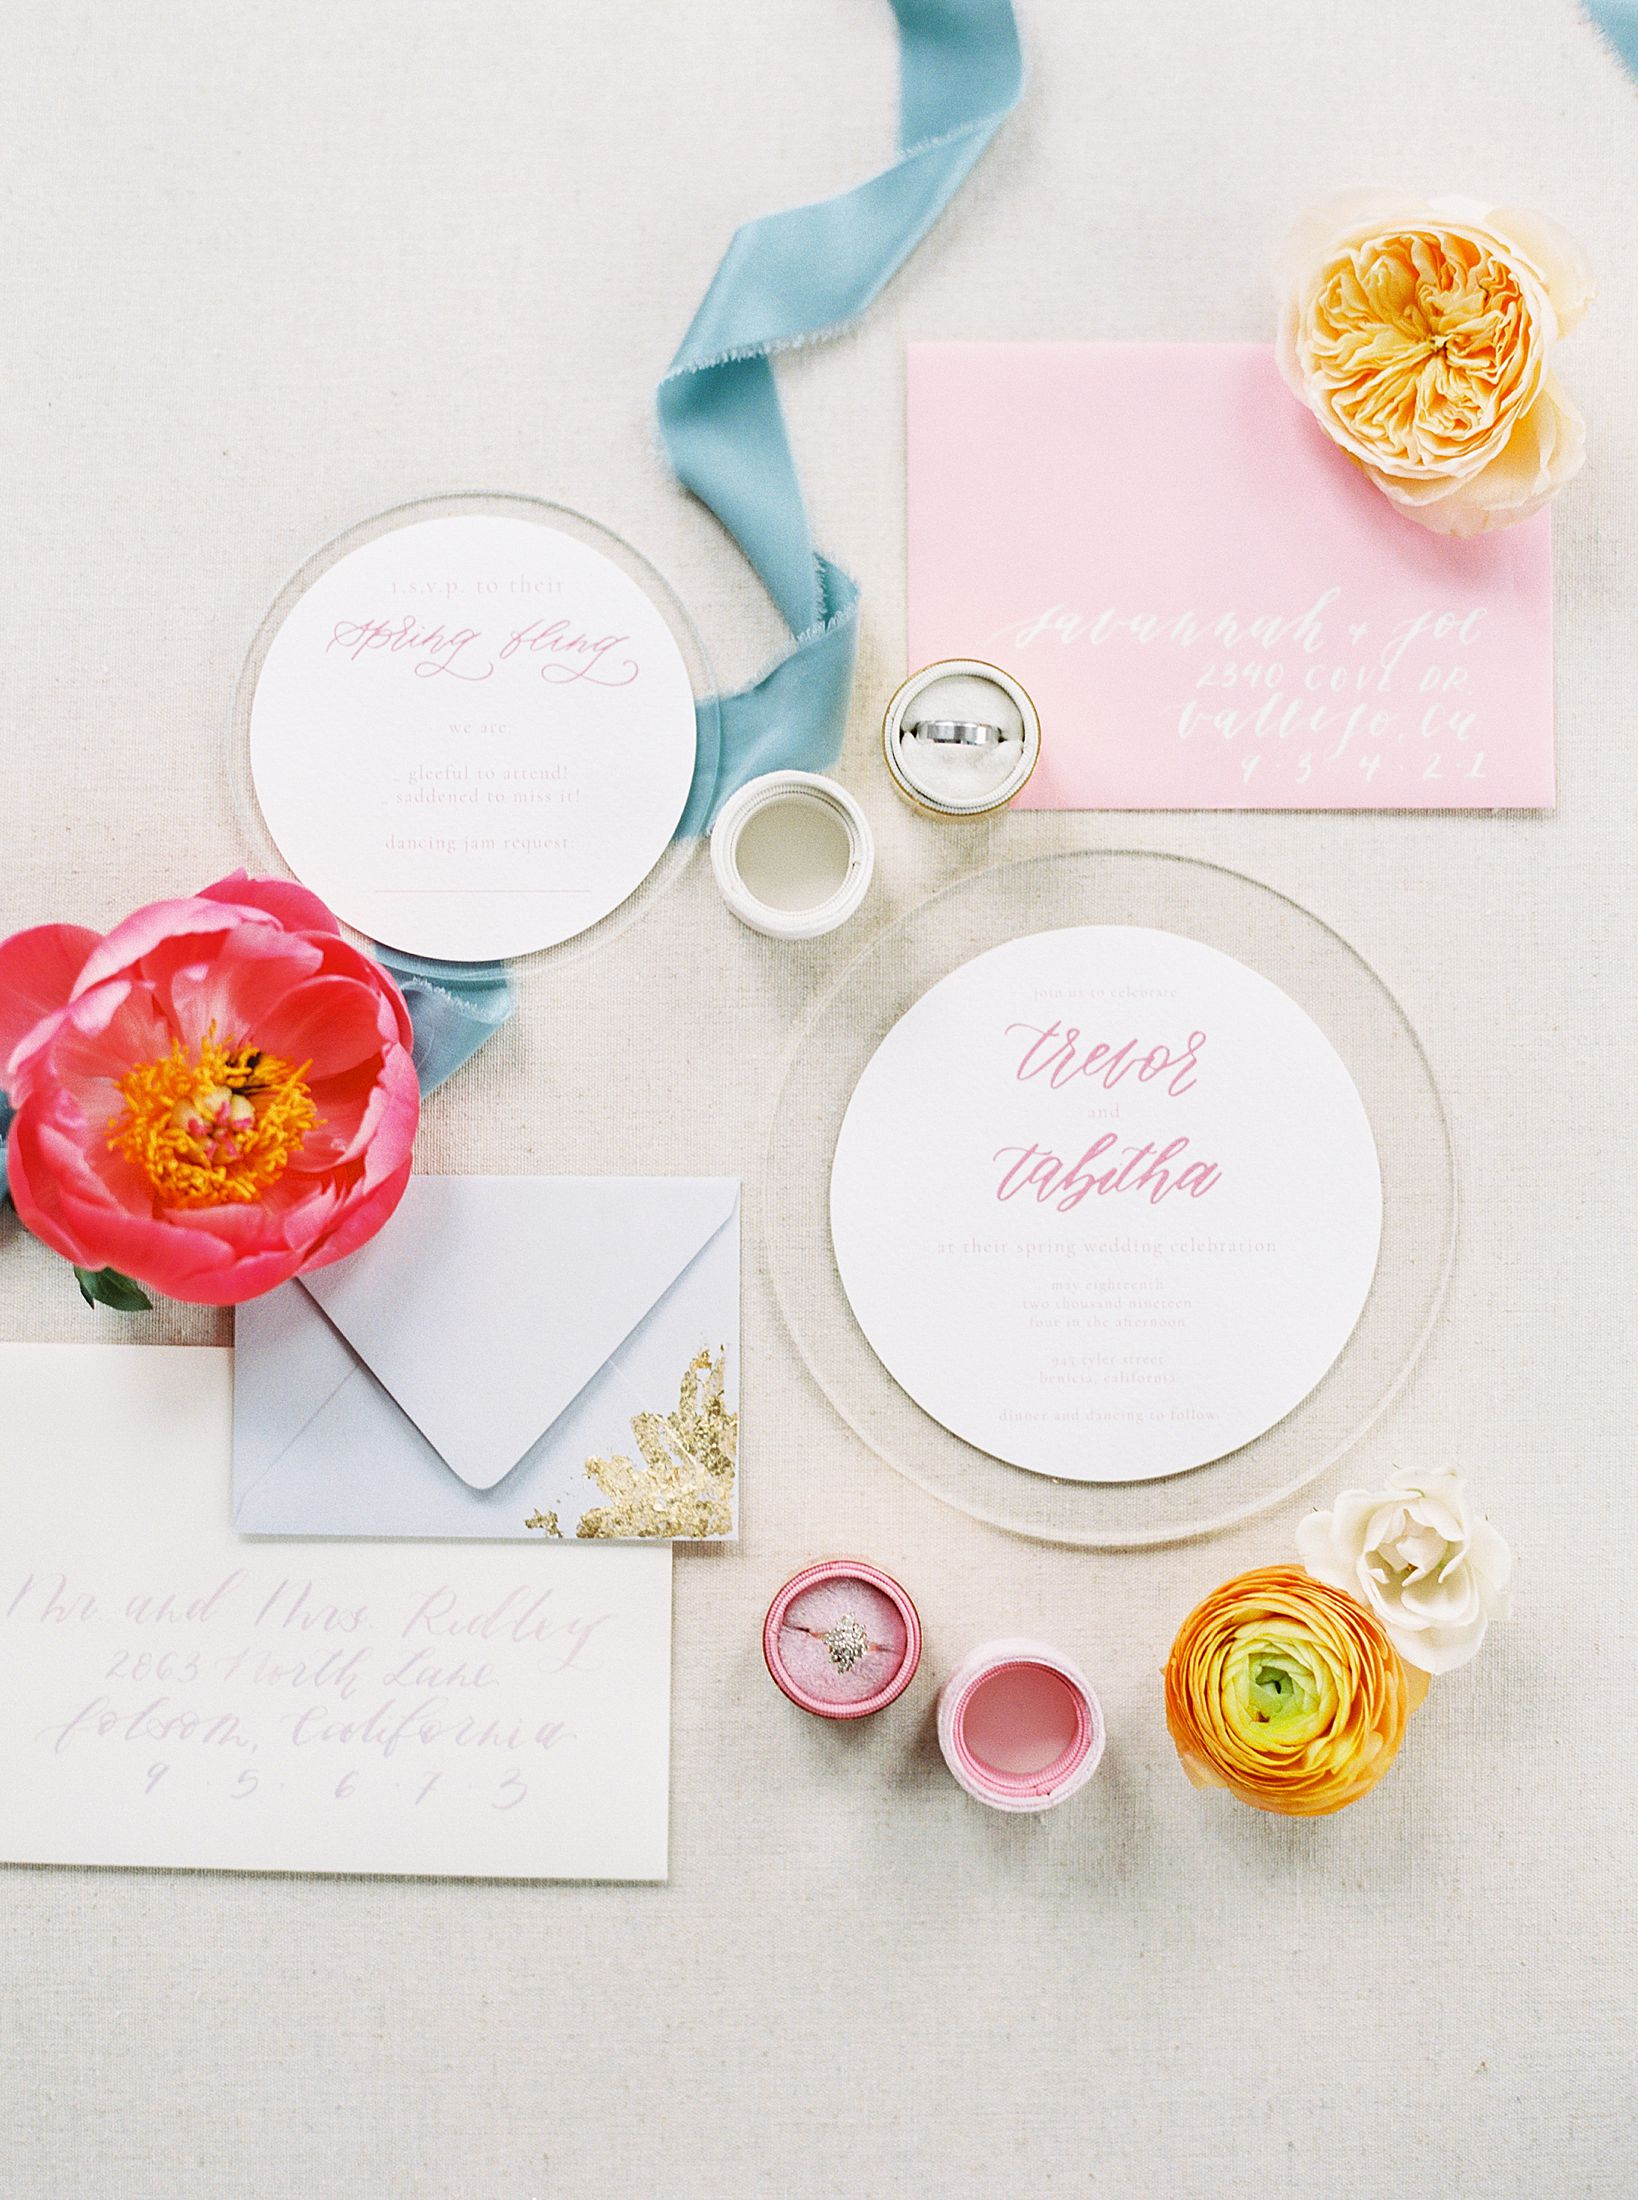 Bay Area Spring Wedding Inspiration - Ashley Baumgartner - Inspired By This - Party Crush Studio and Lens of Lenox Videography - Bay Area Wedding Photography_0060.jpg